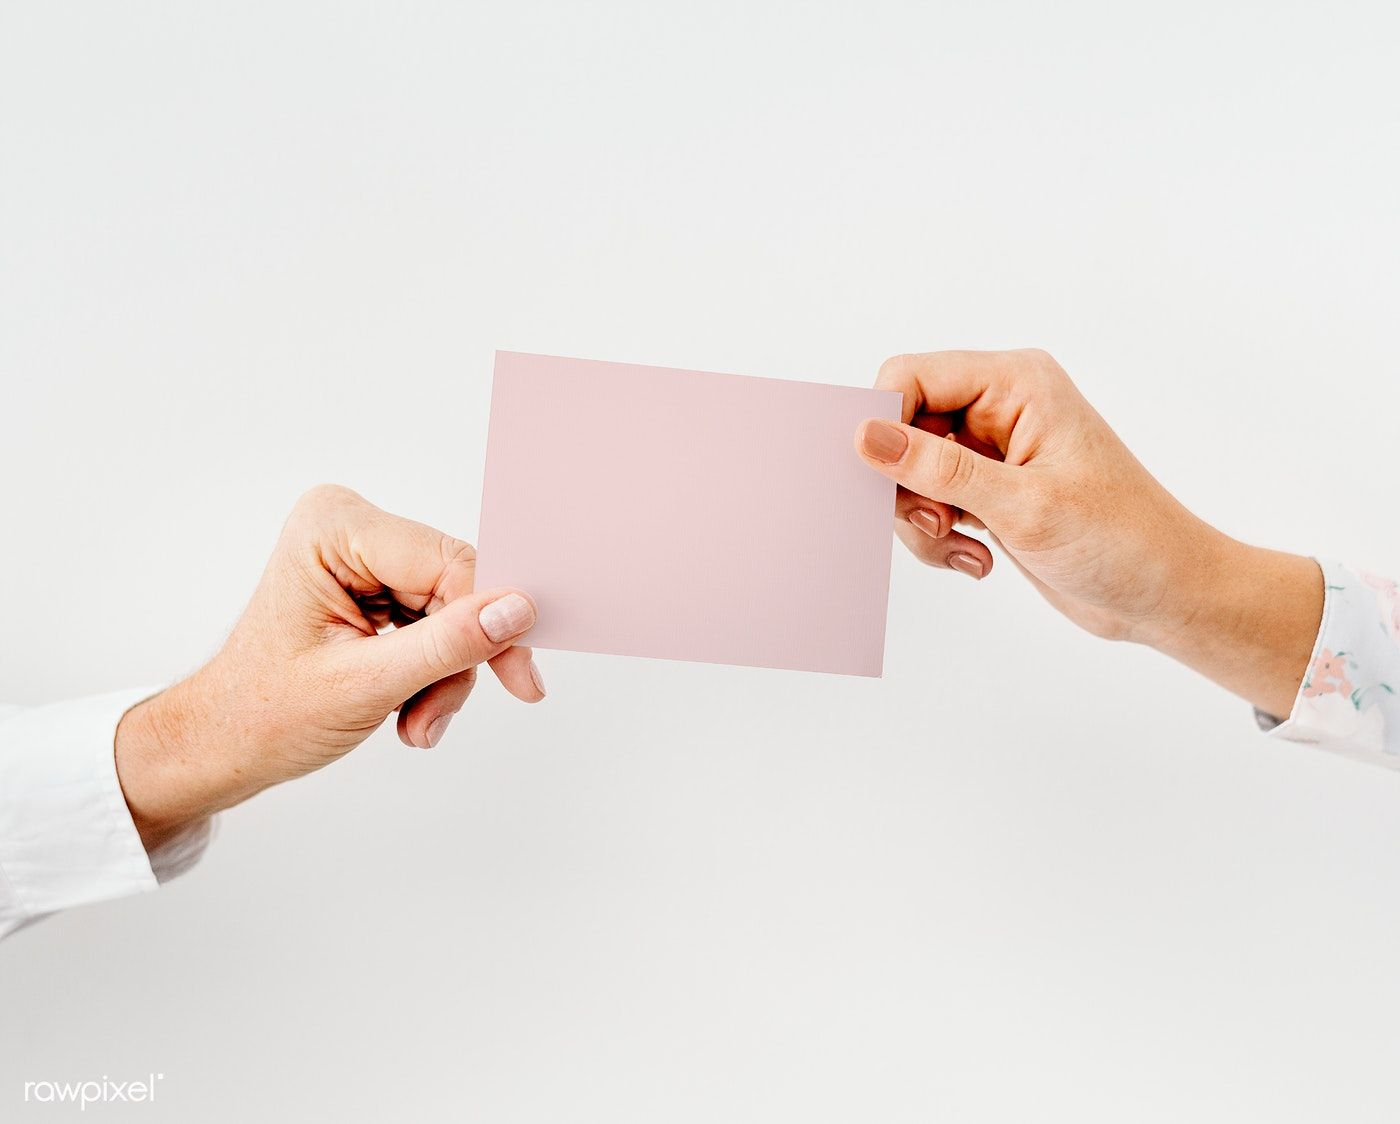 Hands Holding A White Card Mockup Free Image By Rawpixel Com Hand Holding Card Business Card Mock Up Photo Business Cards